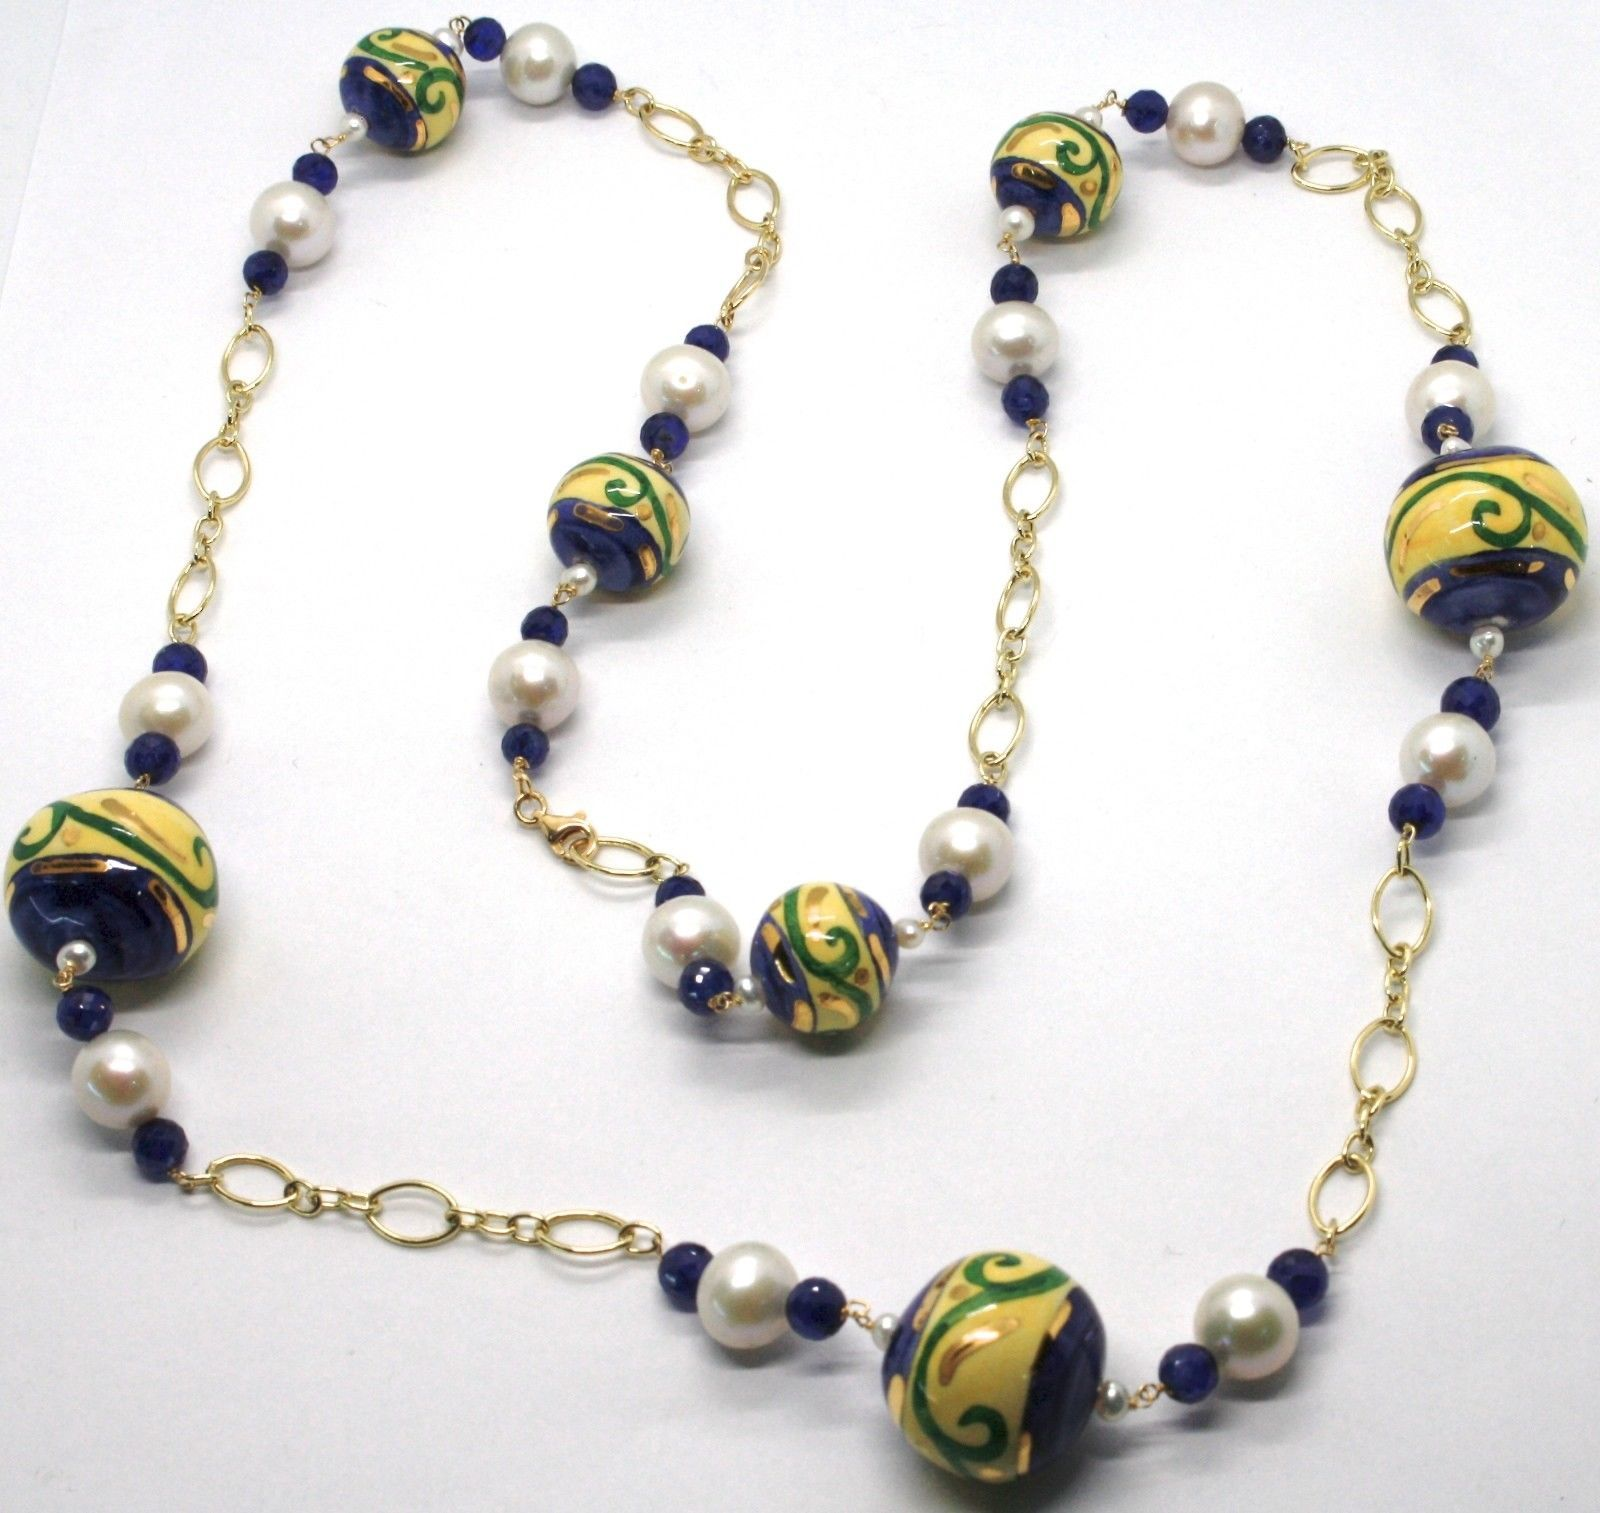 18K YELLOW GOLD LONG NECKLACE BLUE SAPPHIRE CERAMIC SPHERE HAND PAINTED IN ITALY